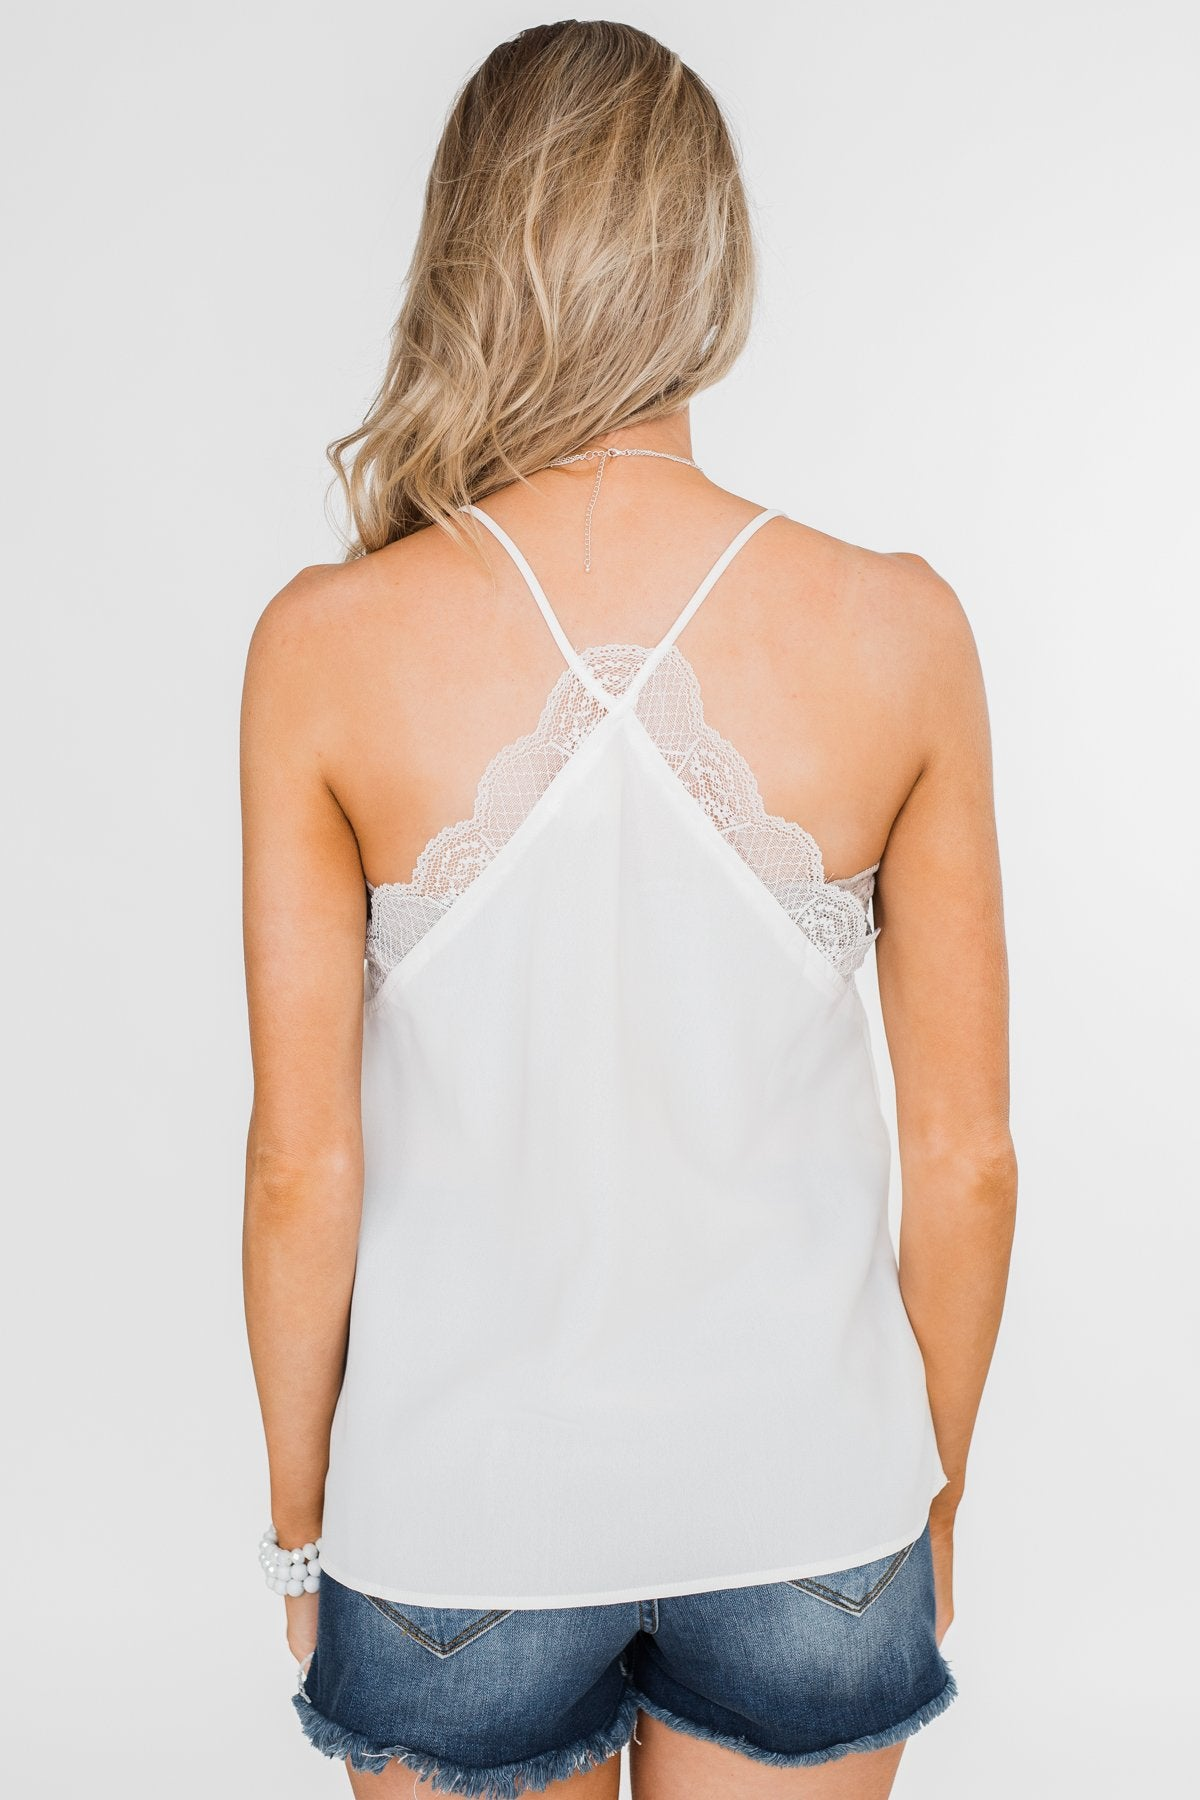 Comes Naturally Lace Racerback Cami- White